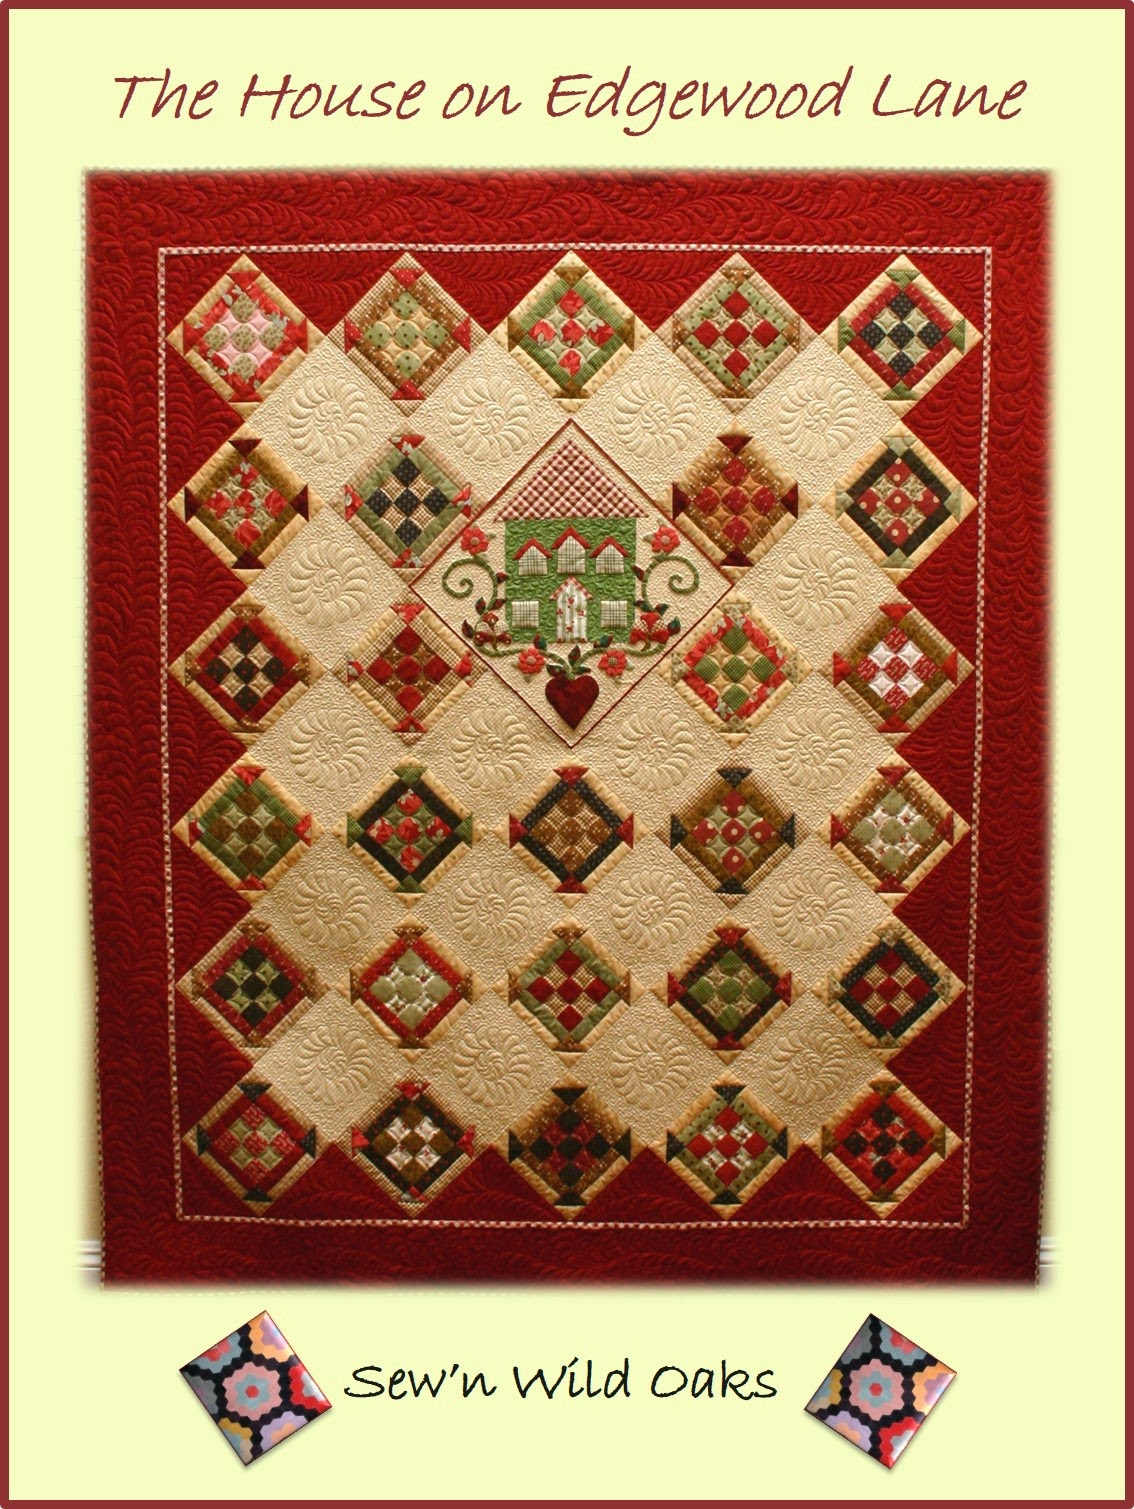 http://www.inbetweenstitches.com/shop/Patterns/p/The-House-on-Edgewood-Lane-x2491541.htm